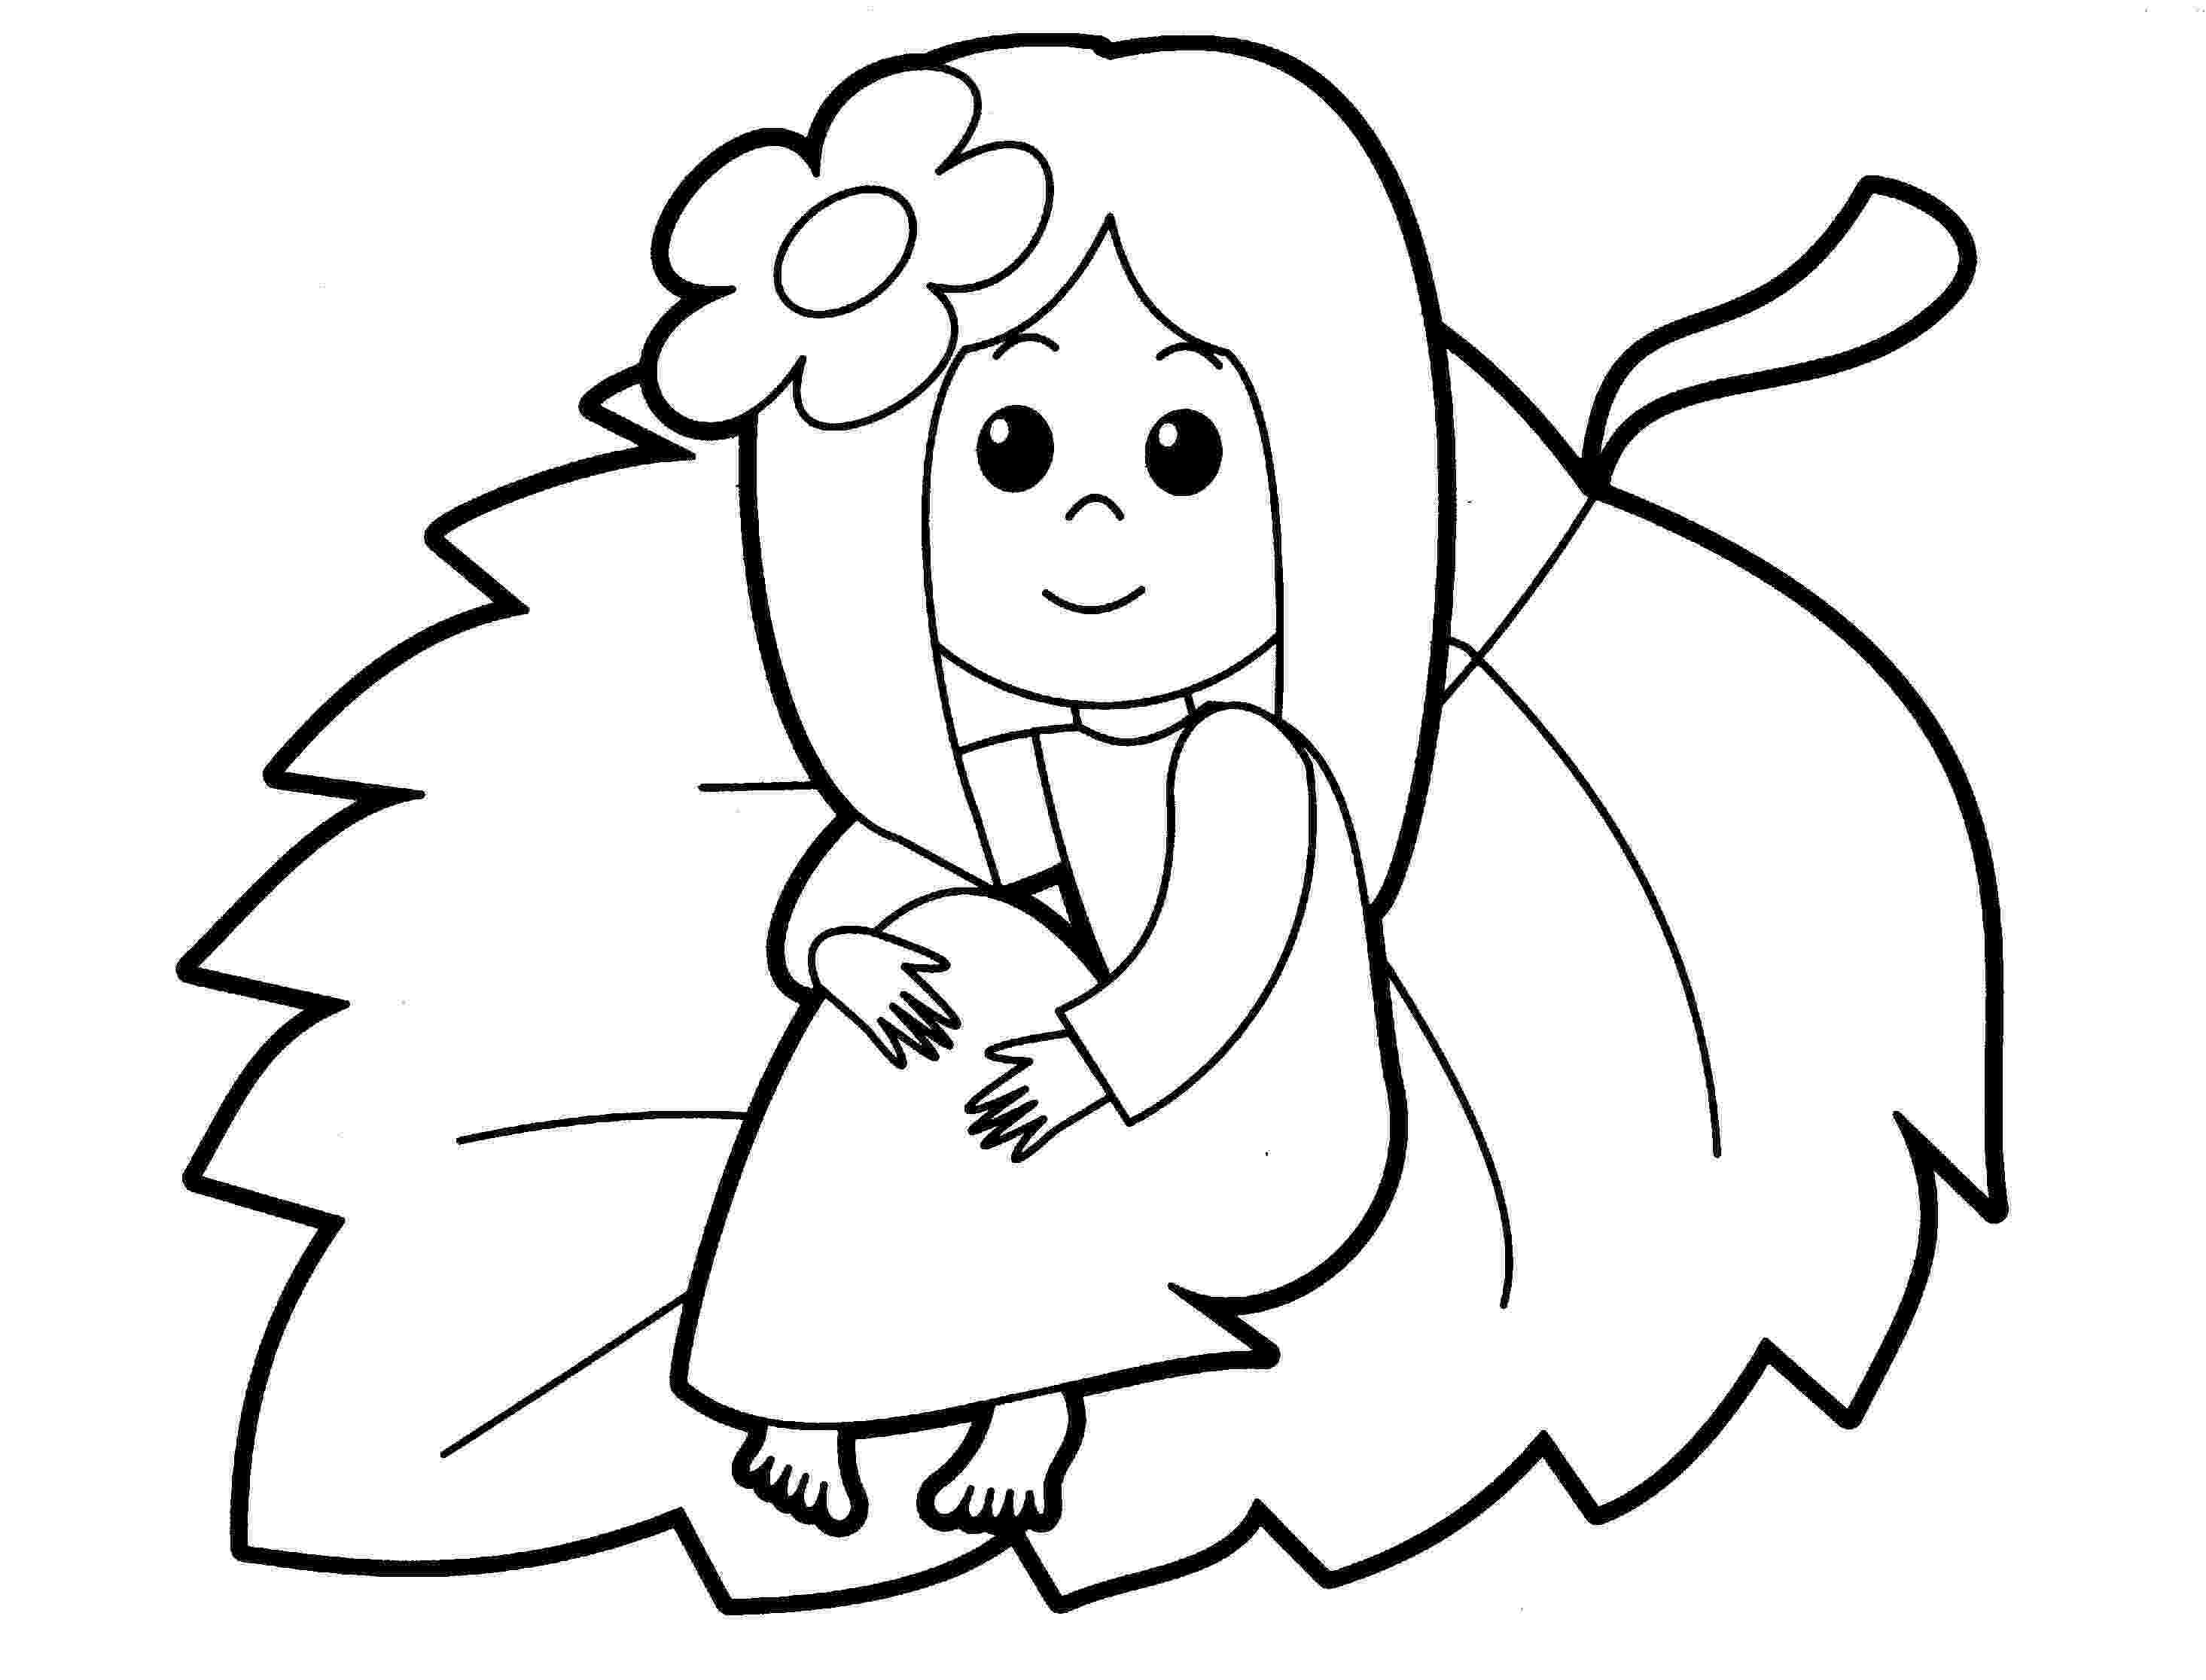 coloring pages of babies baby boss free to color for children baby boss kids babies of coloring pages